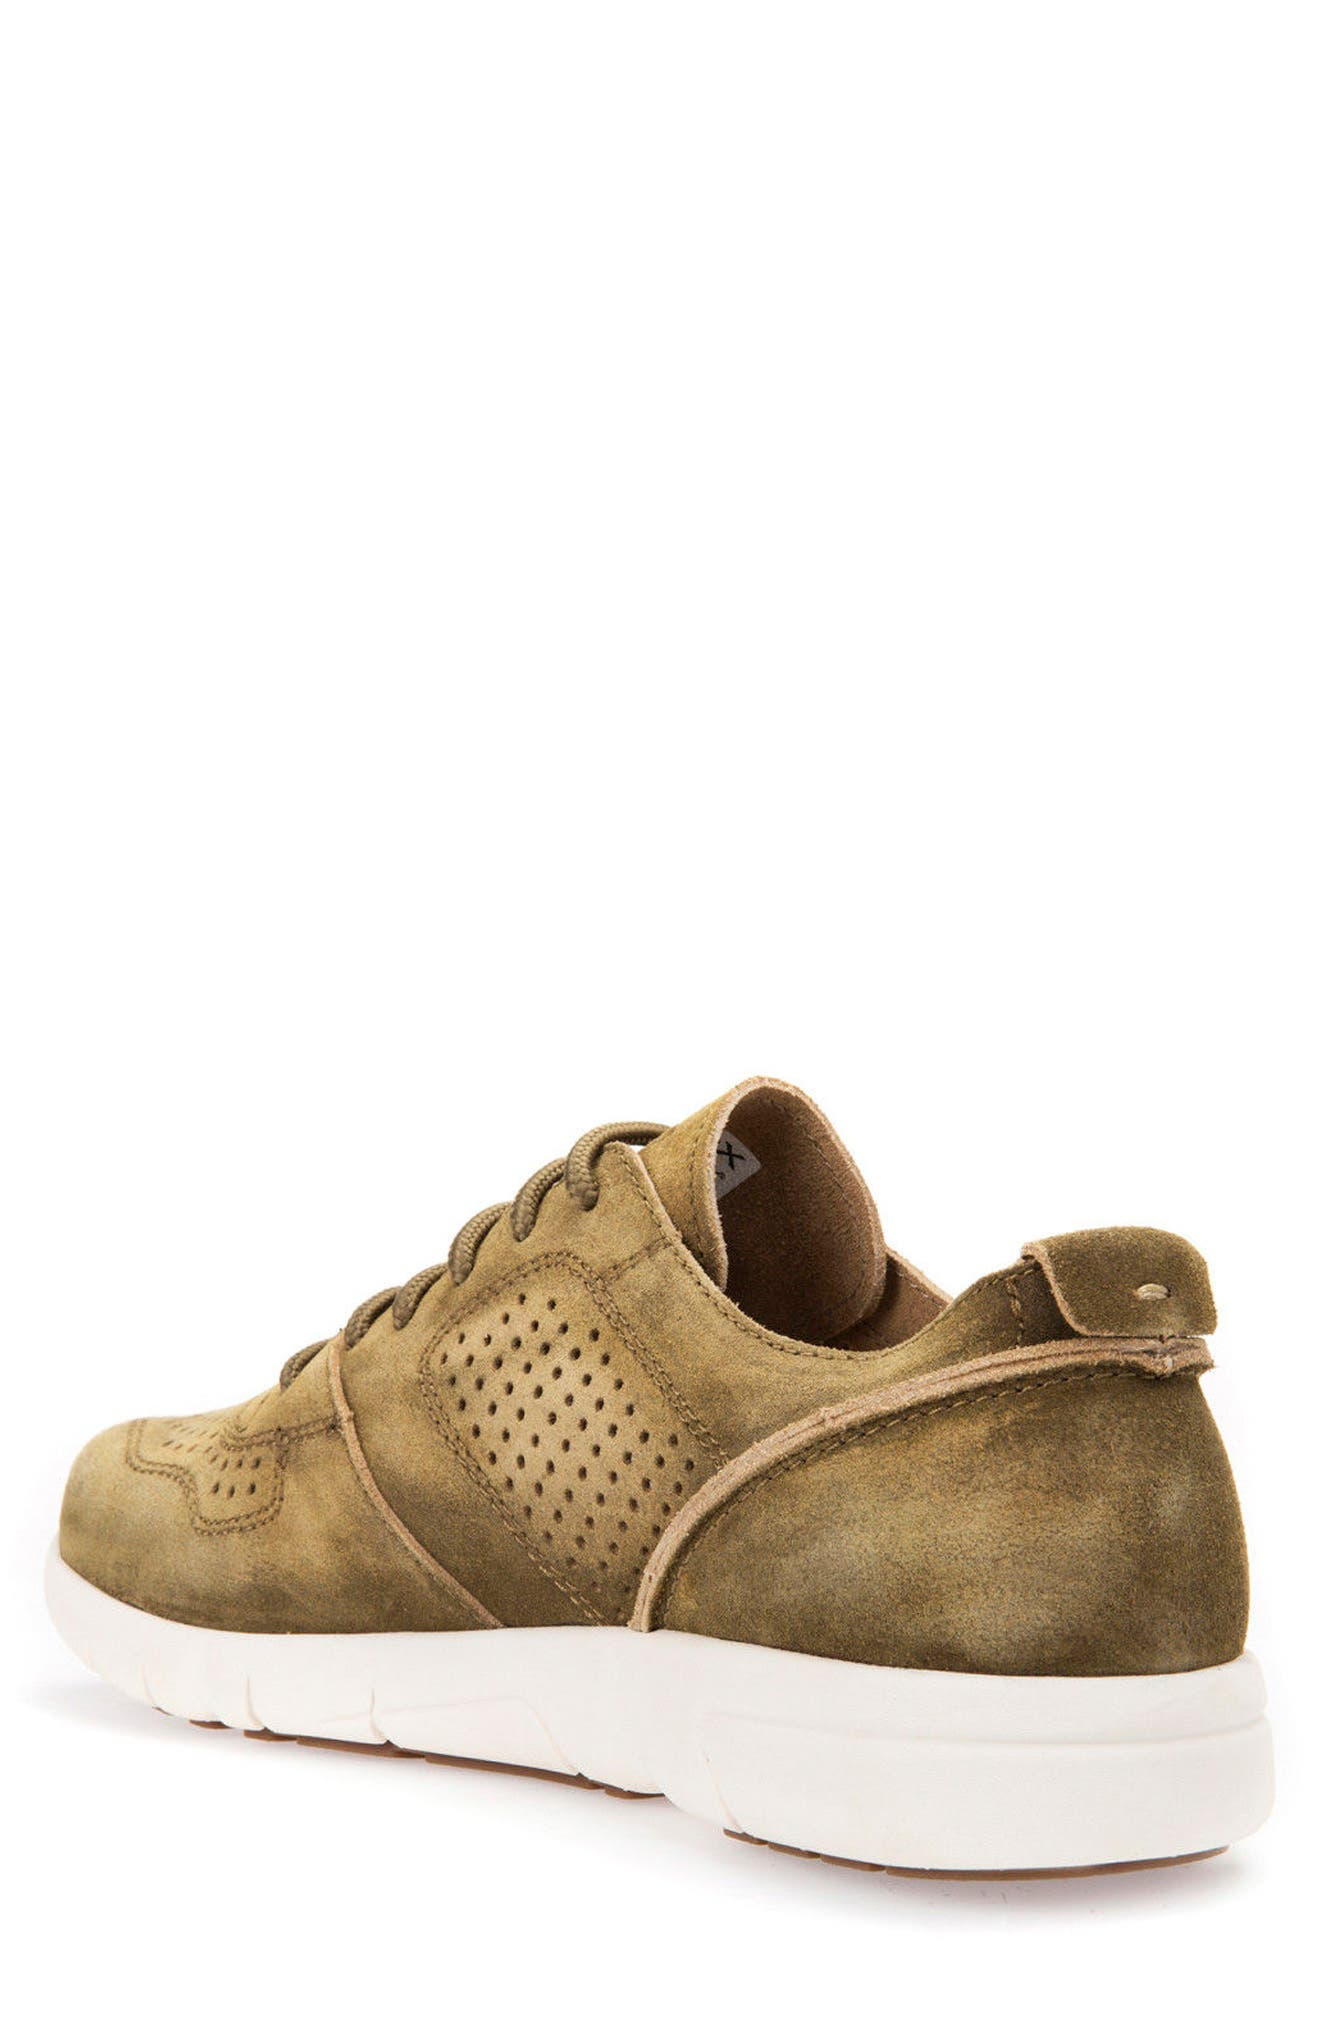 Alternate Image 2  - Geox Brattley 2 Perforated Sneaker (Men)